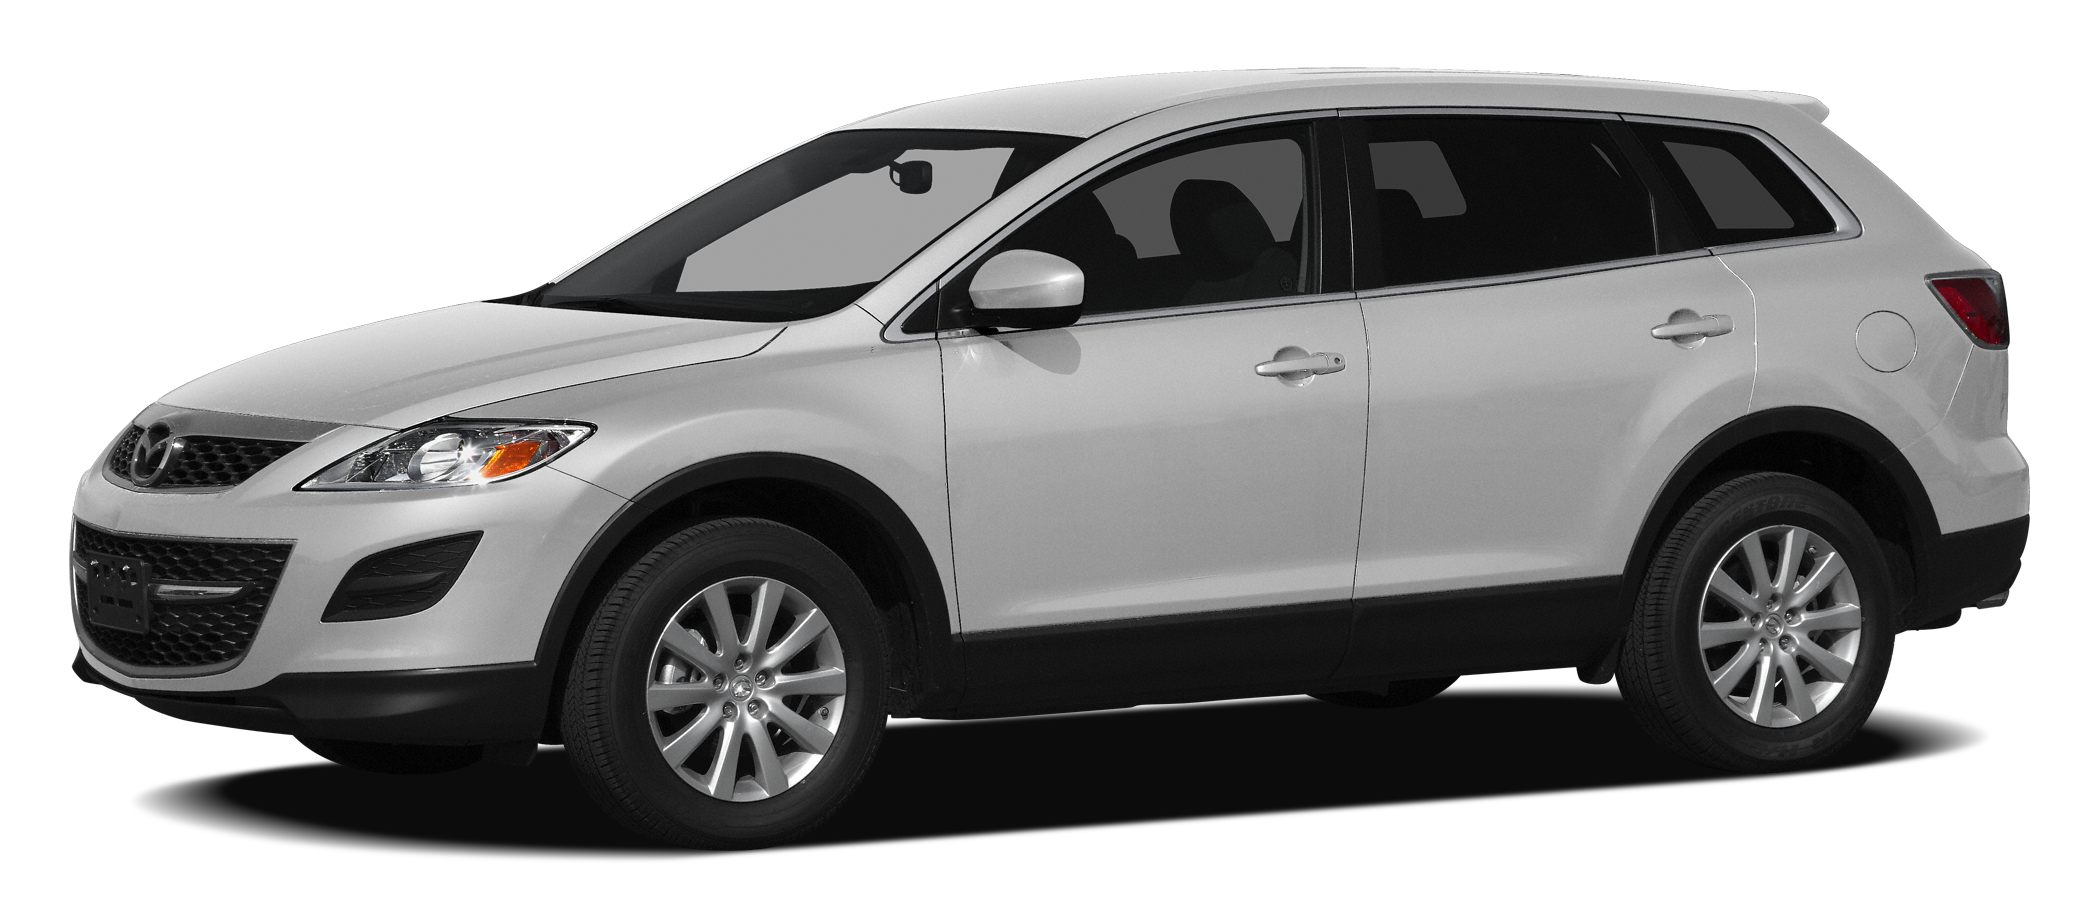 2011 Mazda CX-9 Touring OUR PRICESYoure probably wondering why our prices are so much lower than